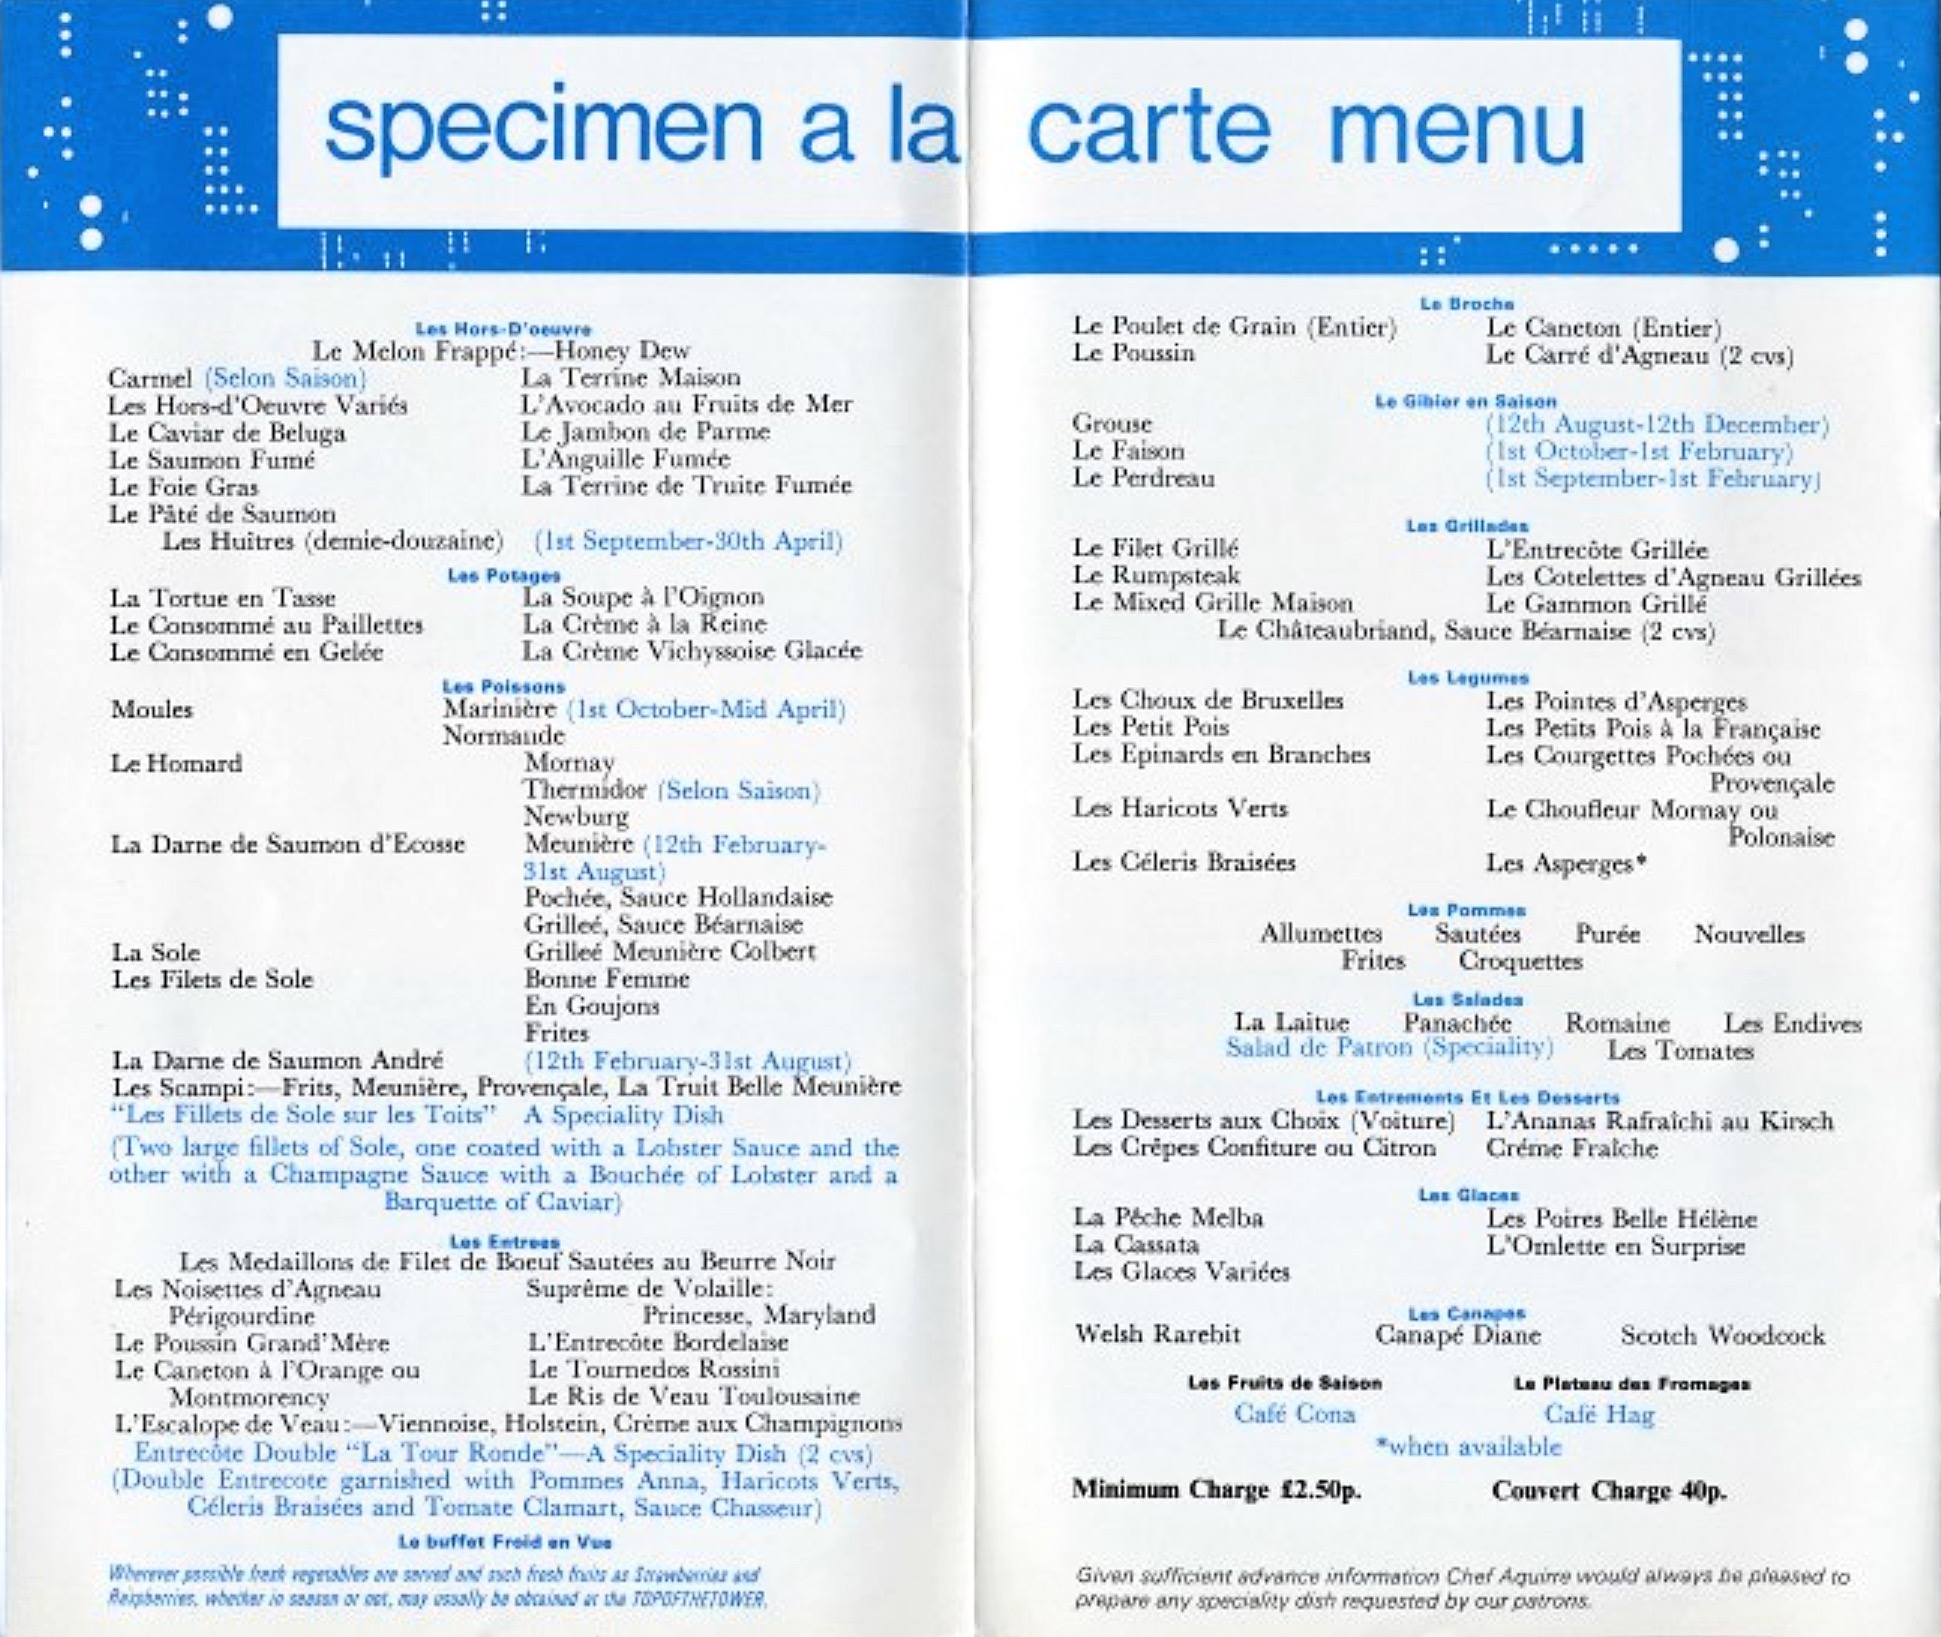 1970s menu for the Post Office Tower restaurant, London